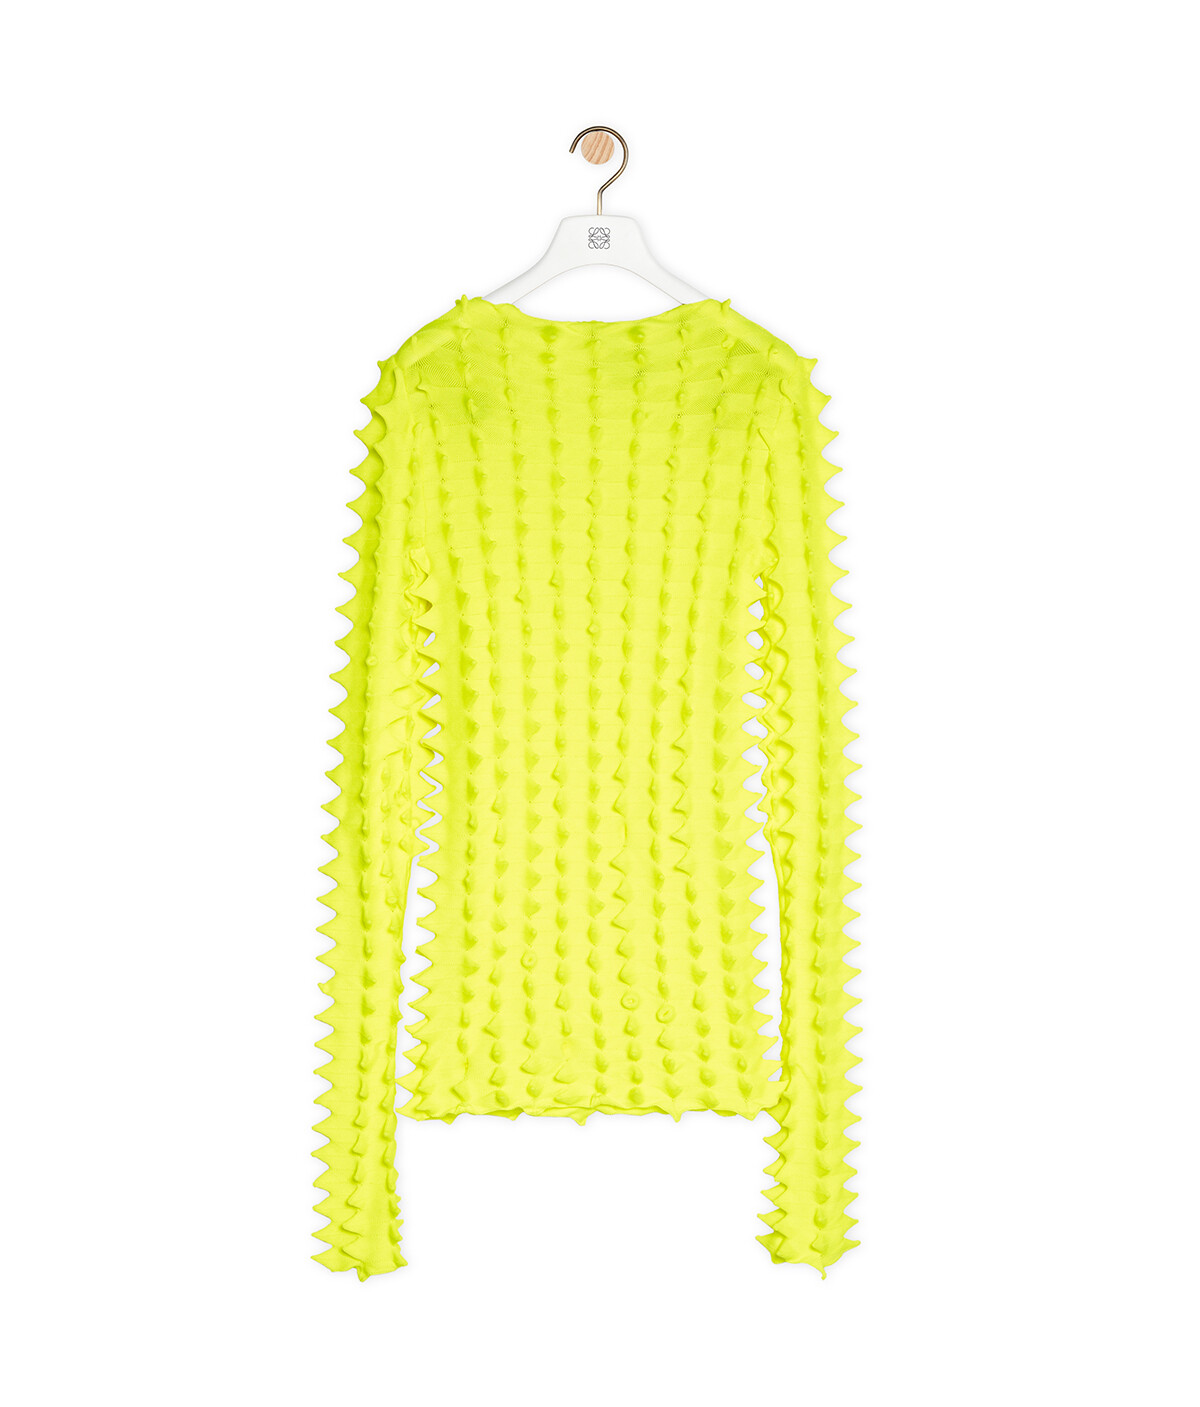 LOEWE 3D Knitted Sweater In Polyester Yellow Lemon front